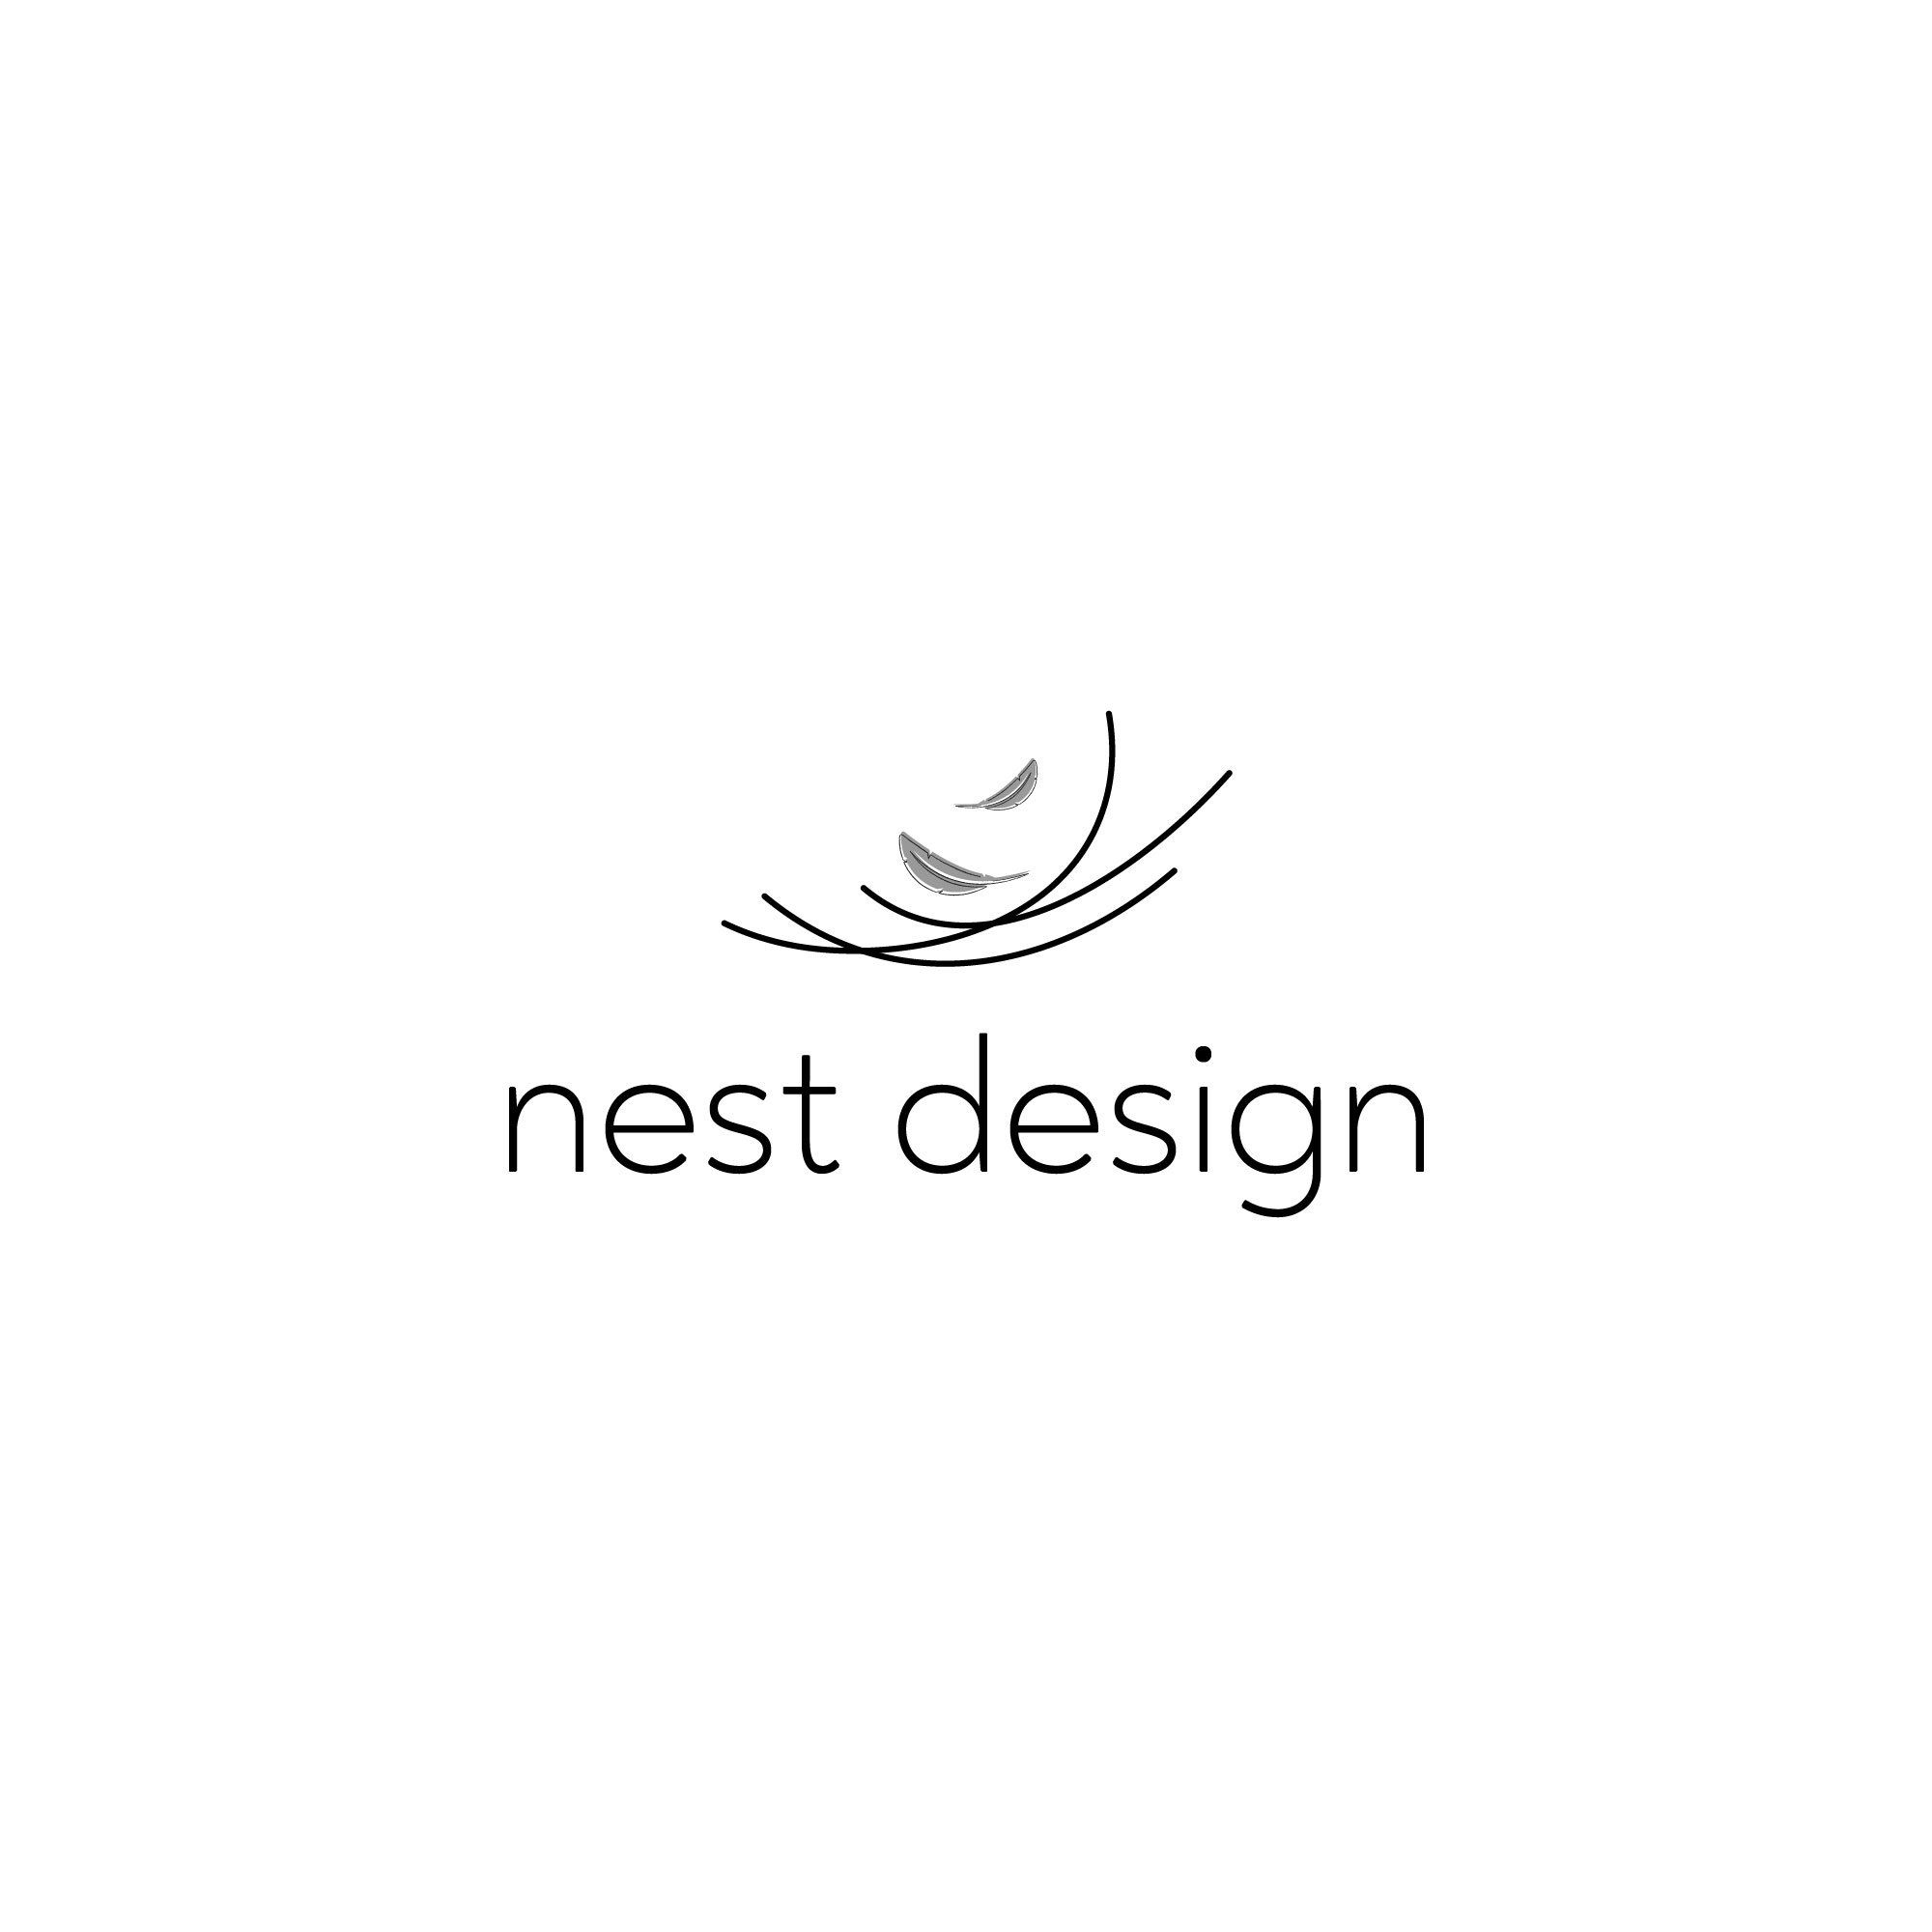 Premade Minimalist Luxury Nest Feather Logo For A Life Coach Designer Blogger Consulting Business In 2021 Feather Design Logo Feather Logo Candle Logo Design